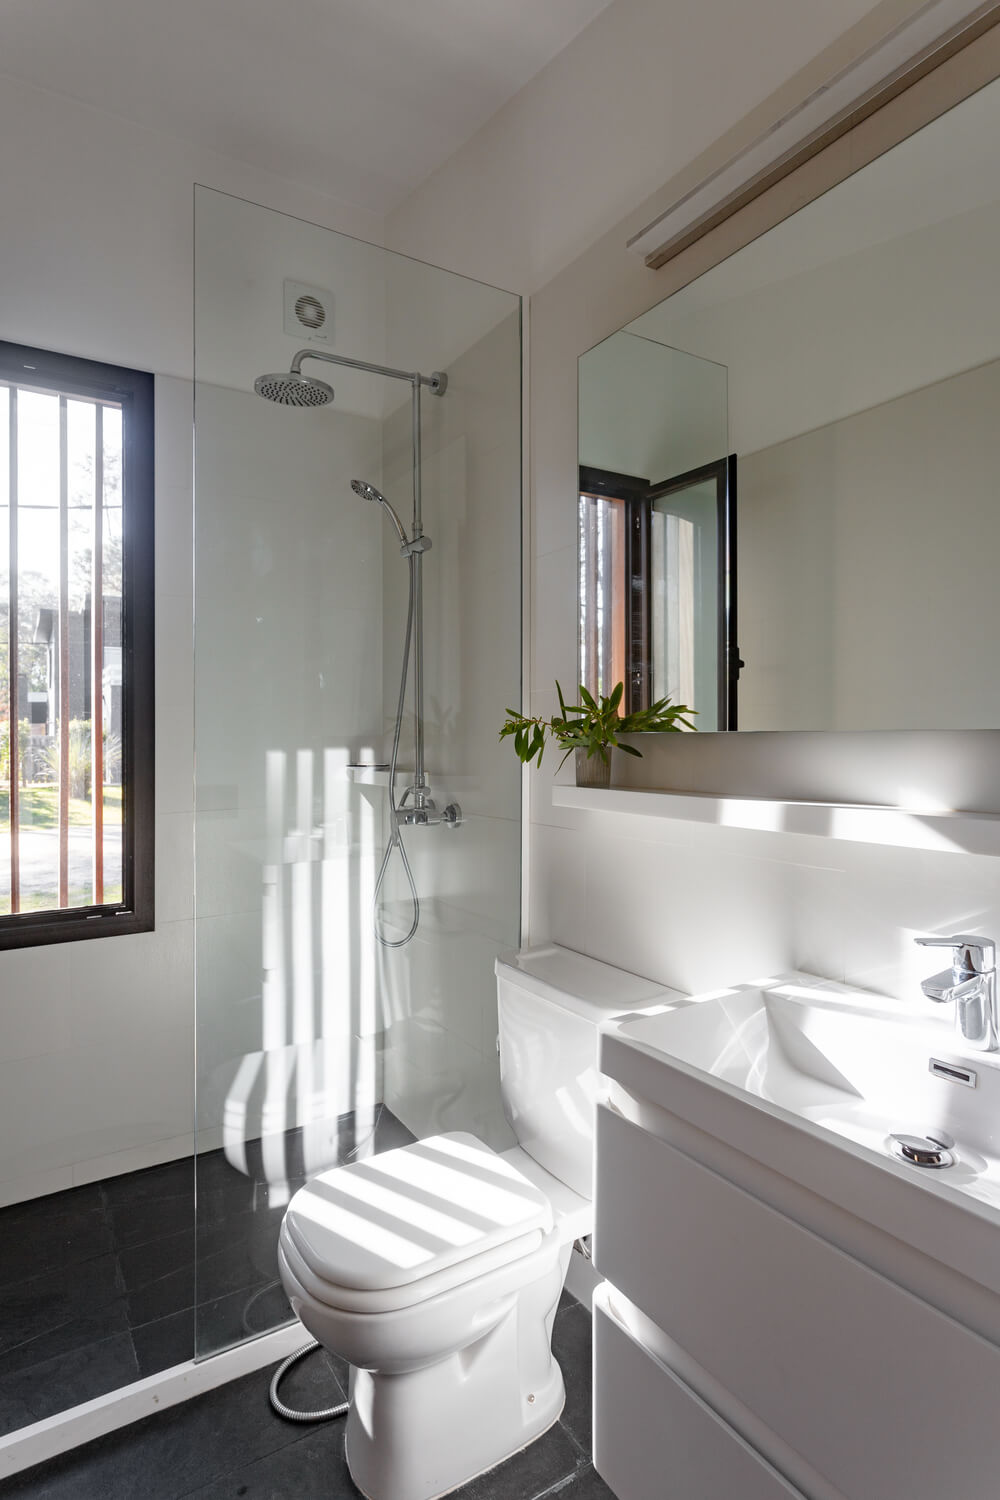 The bathroom has a consistent bright white tone to its shower area, vanity and toilet brightened by the natural light.